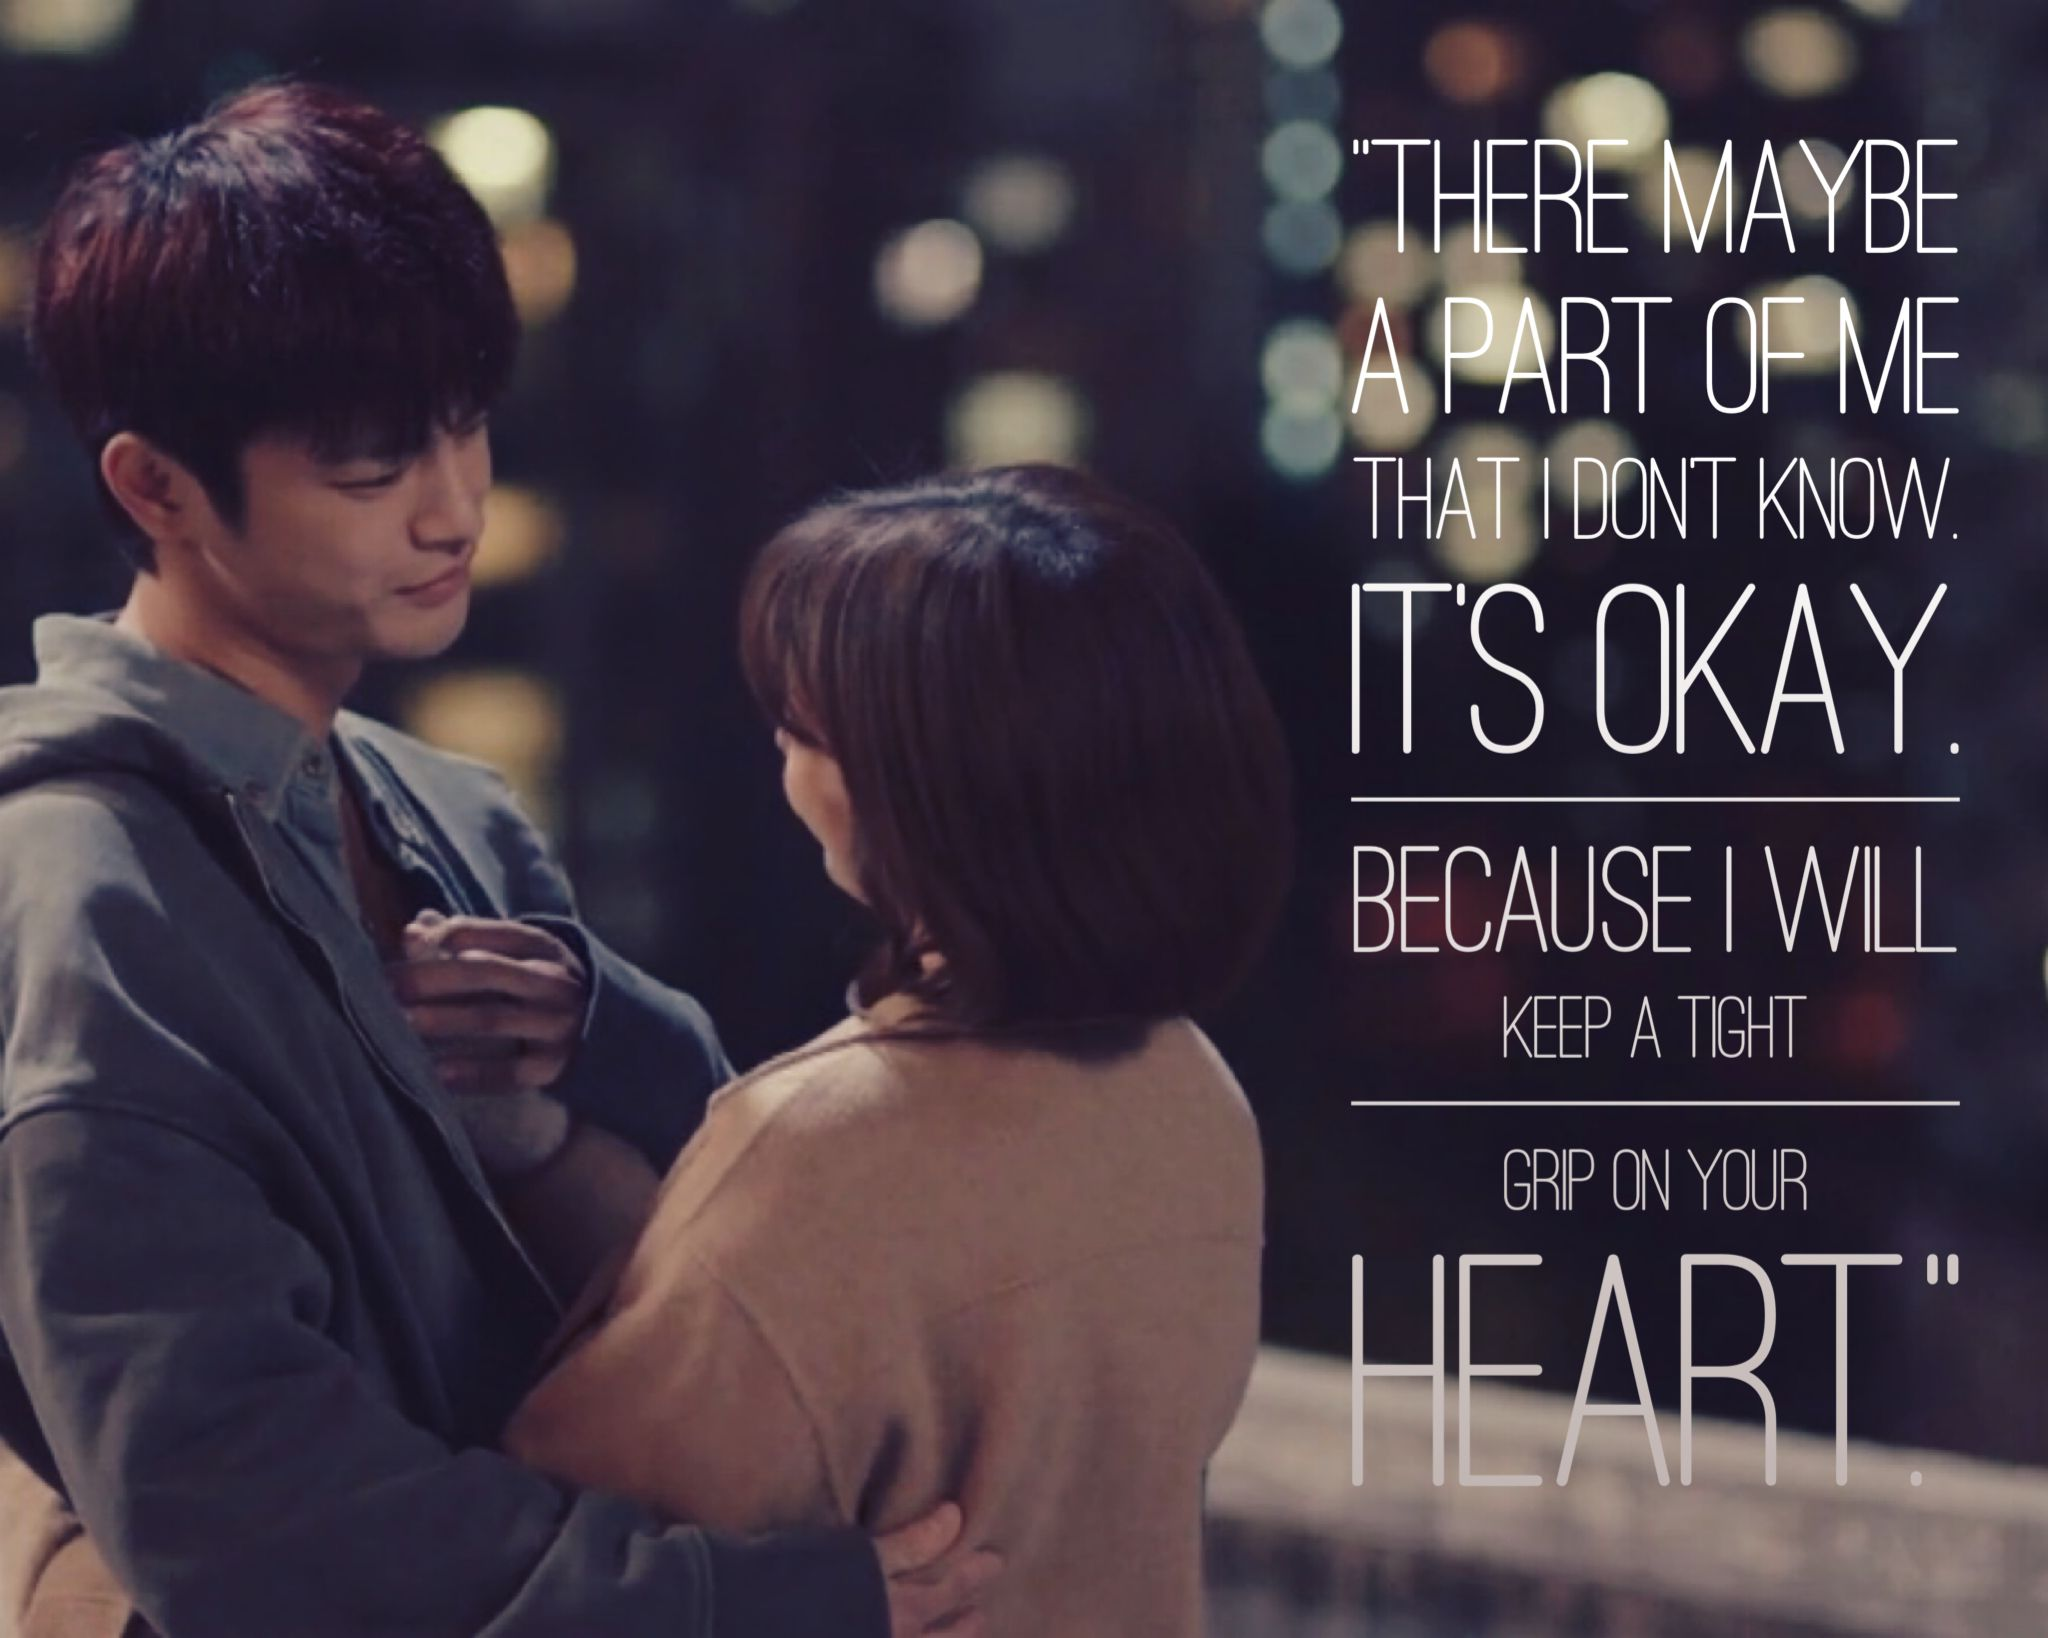 The Smiles Has Left Your Eyes Kdrama Quotes Korean Drama Quotes Drama Quotes